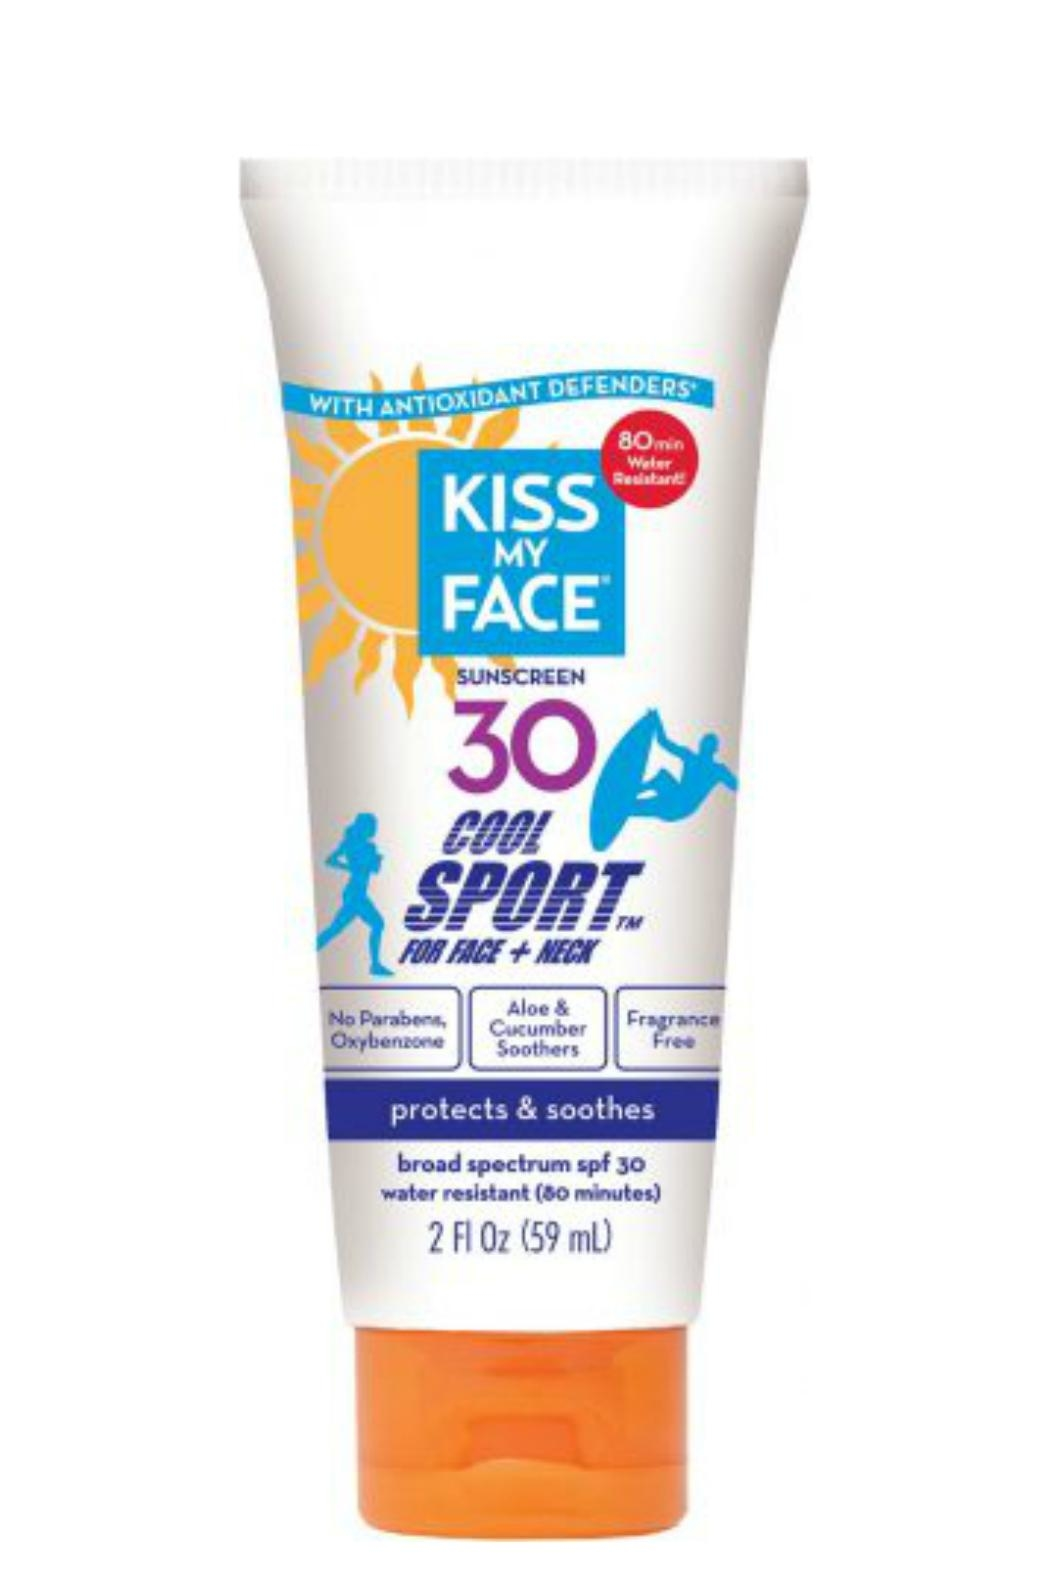 Kiss My Face Coolsport Spf30 Sunscreen - Main Image